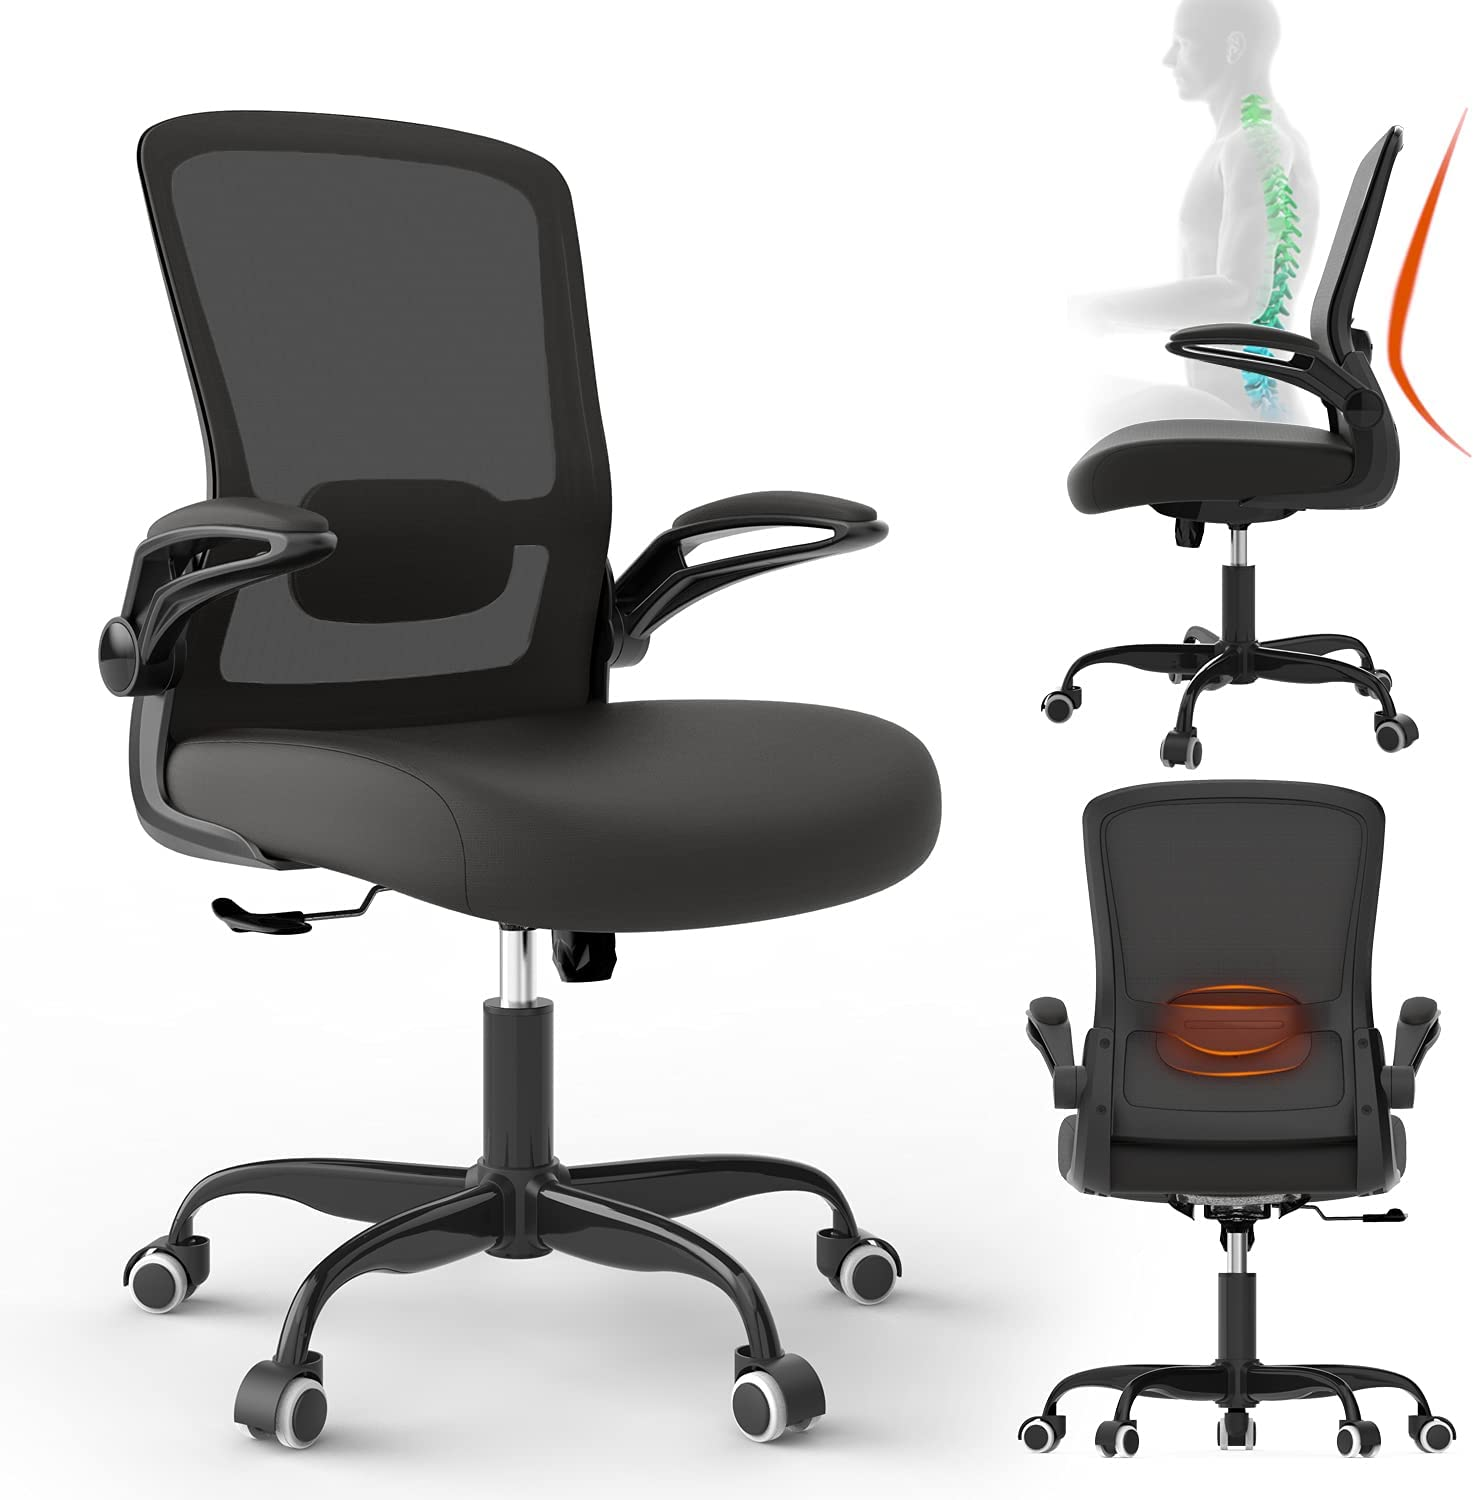 Ergonomic Desk Chair, Office Chair,Mesh Computer Chair with Flip Up Arms, Modern Executive Chair with Lumbar Support & Adjustable Height,Task Chair for Home Office